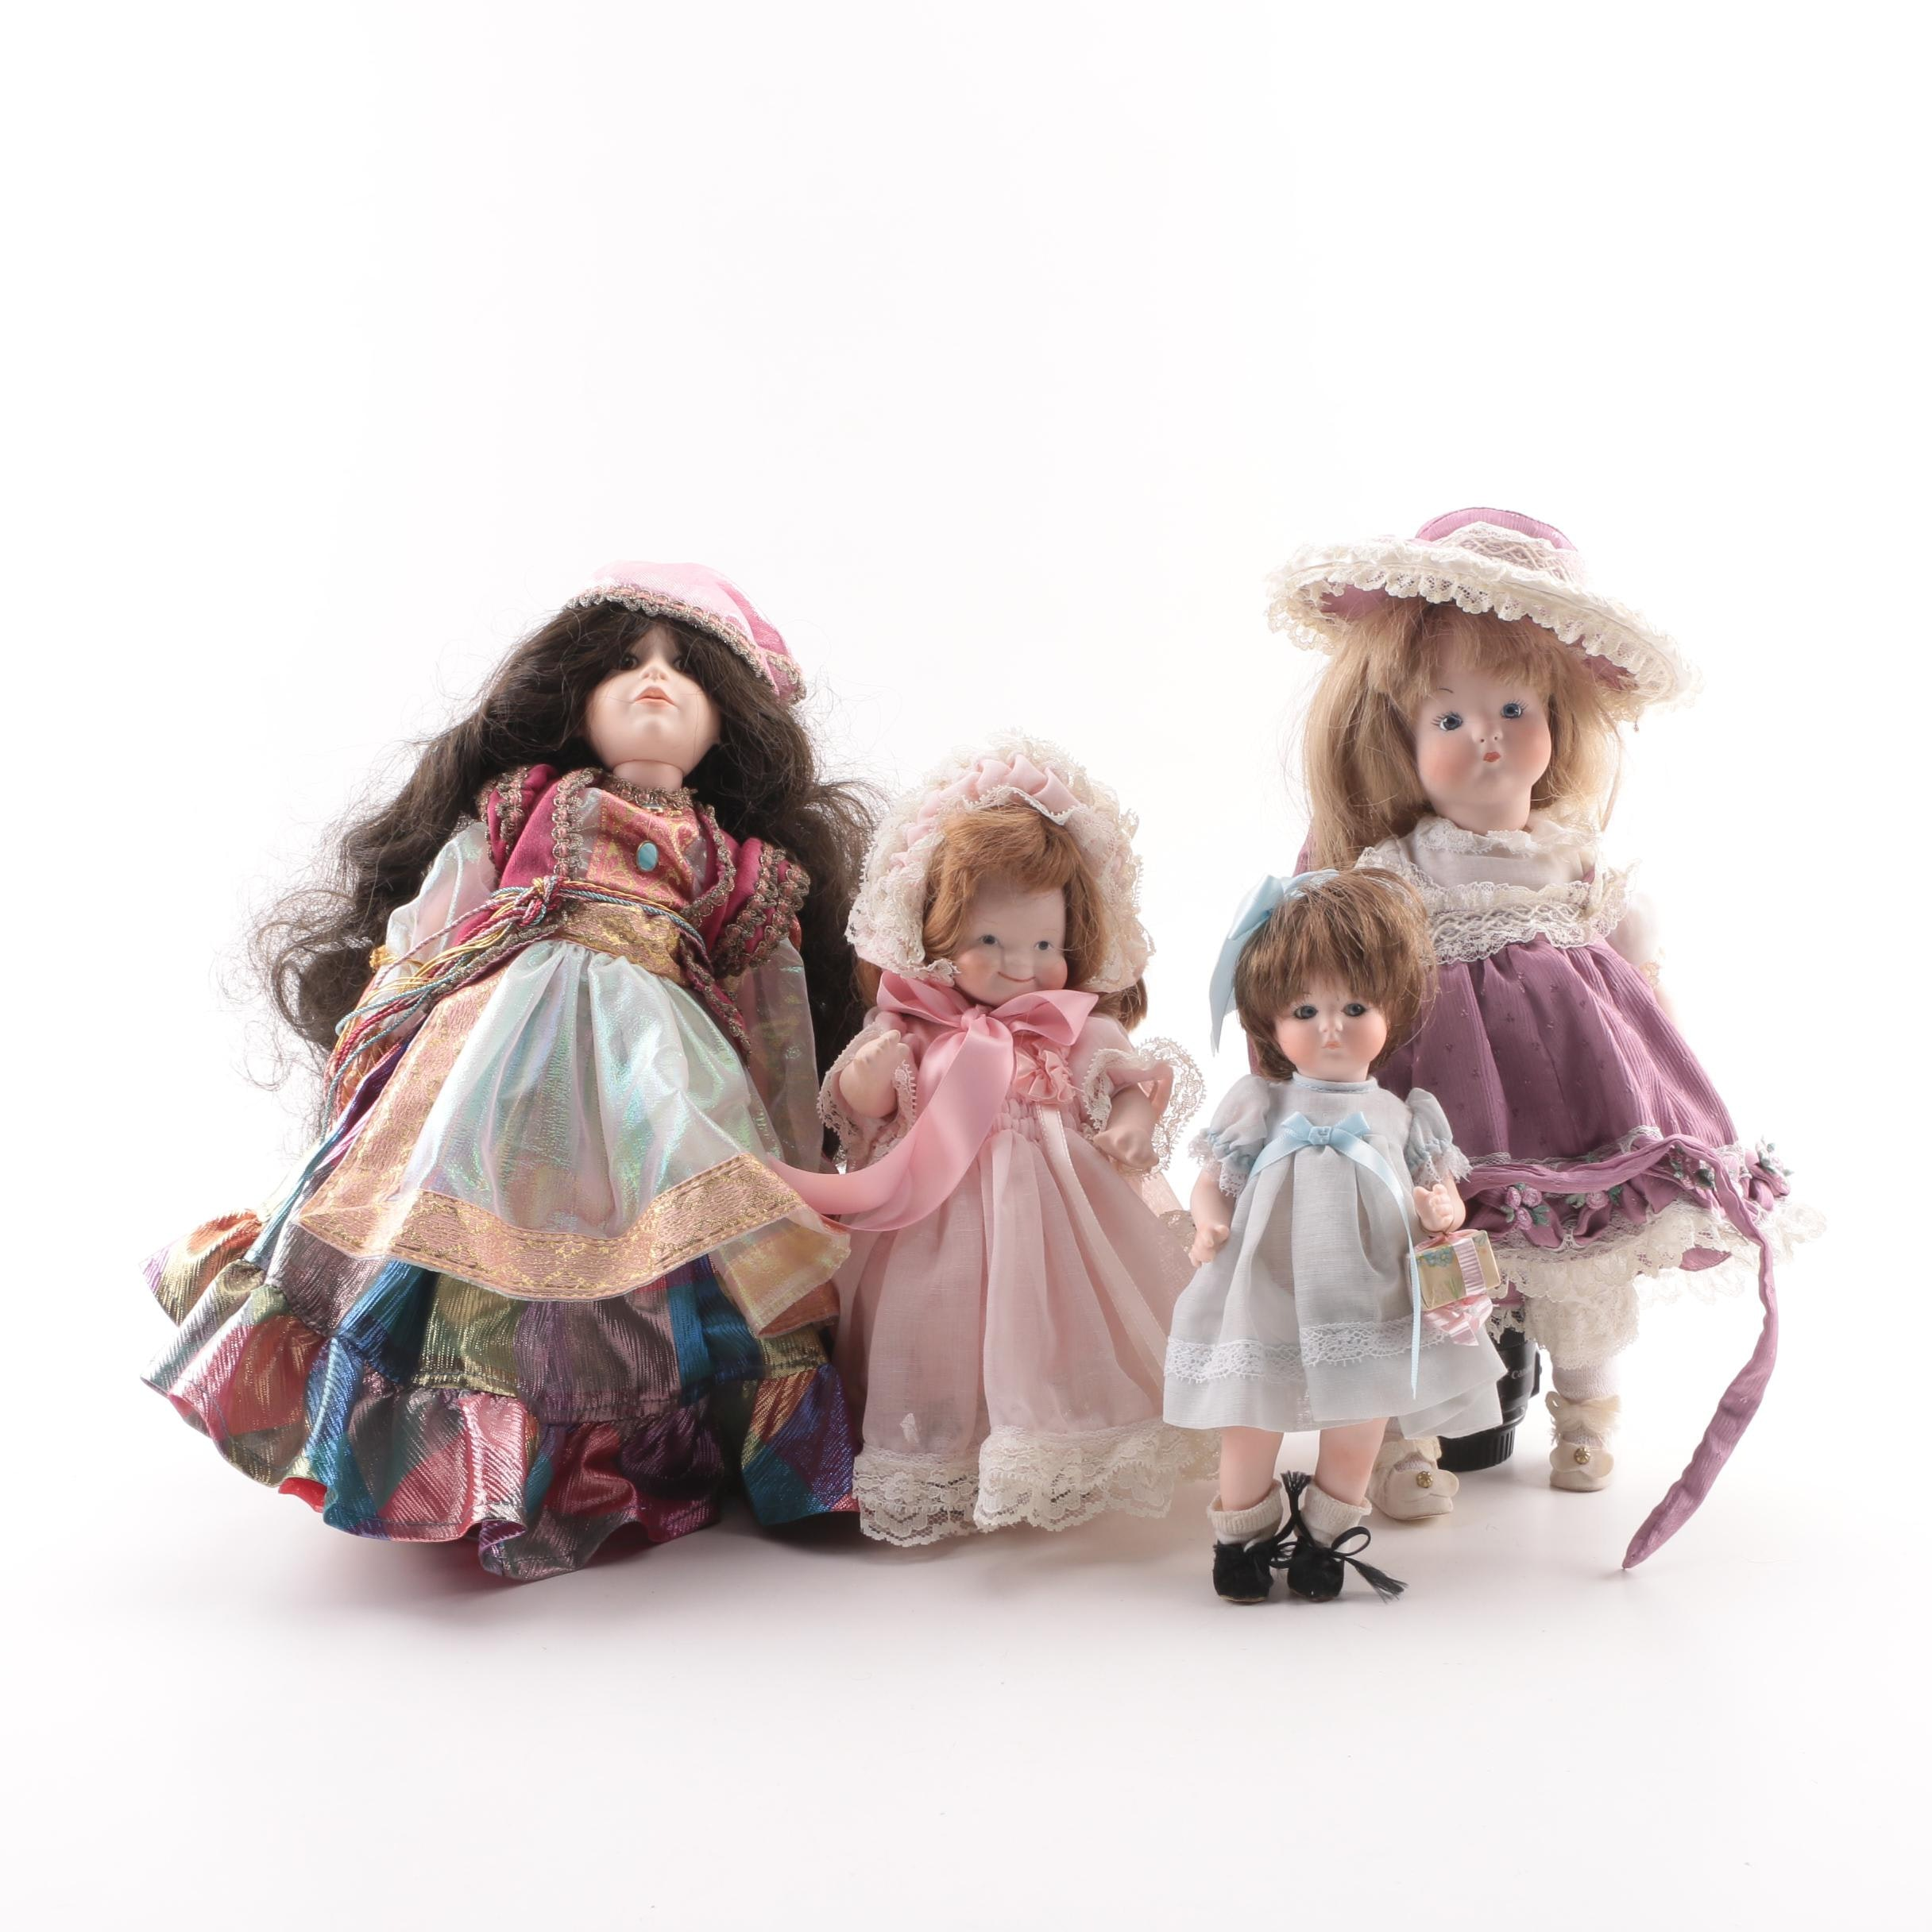 Vintage German Porcelain Dolls Featuring Carol Turpin